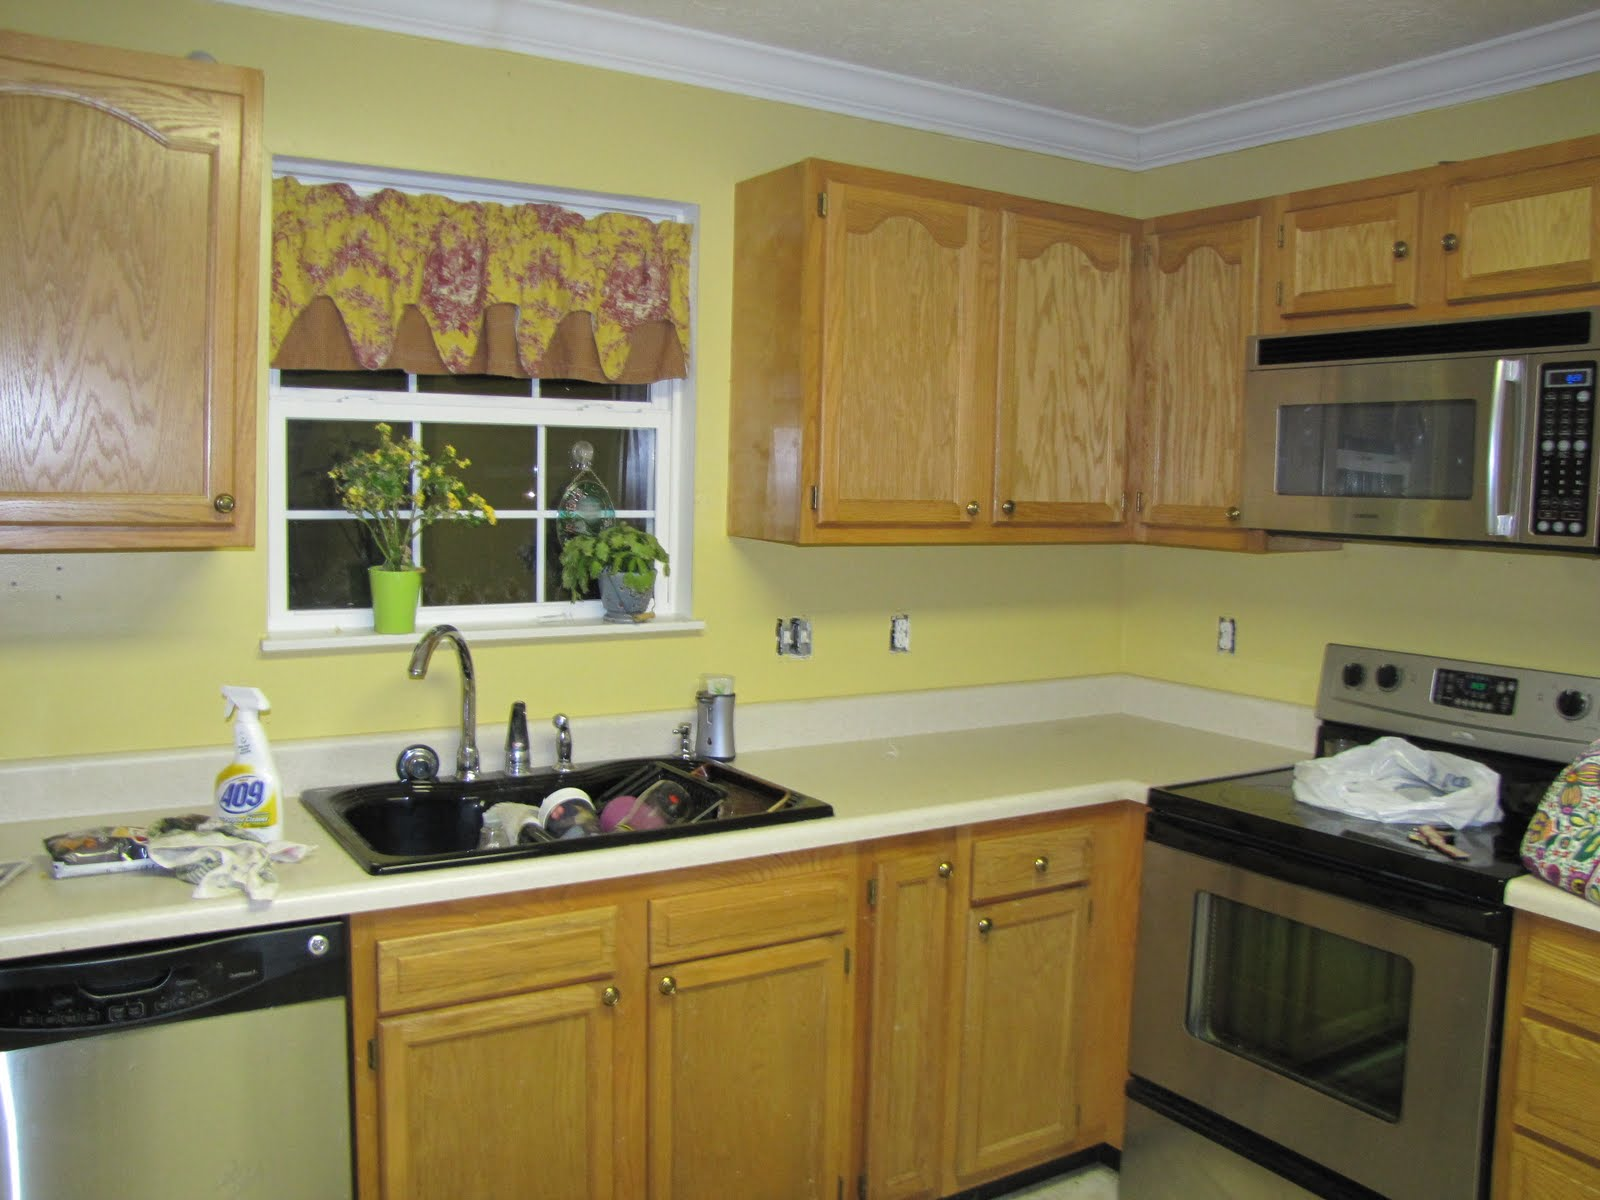 Yellow Paint For Kitchen Walls - painting kitchen walls shades of ...